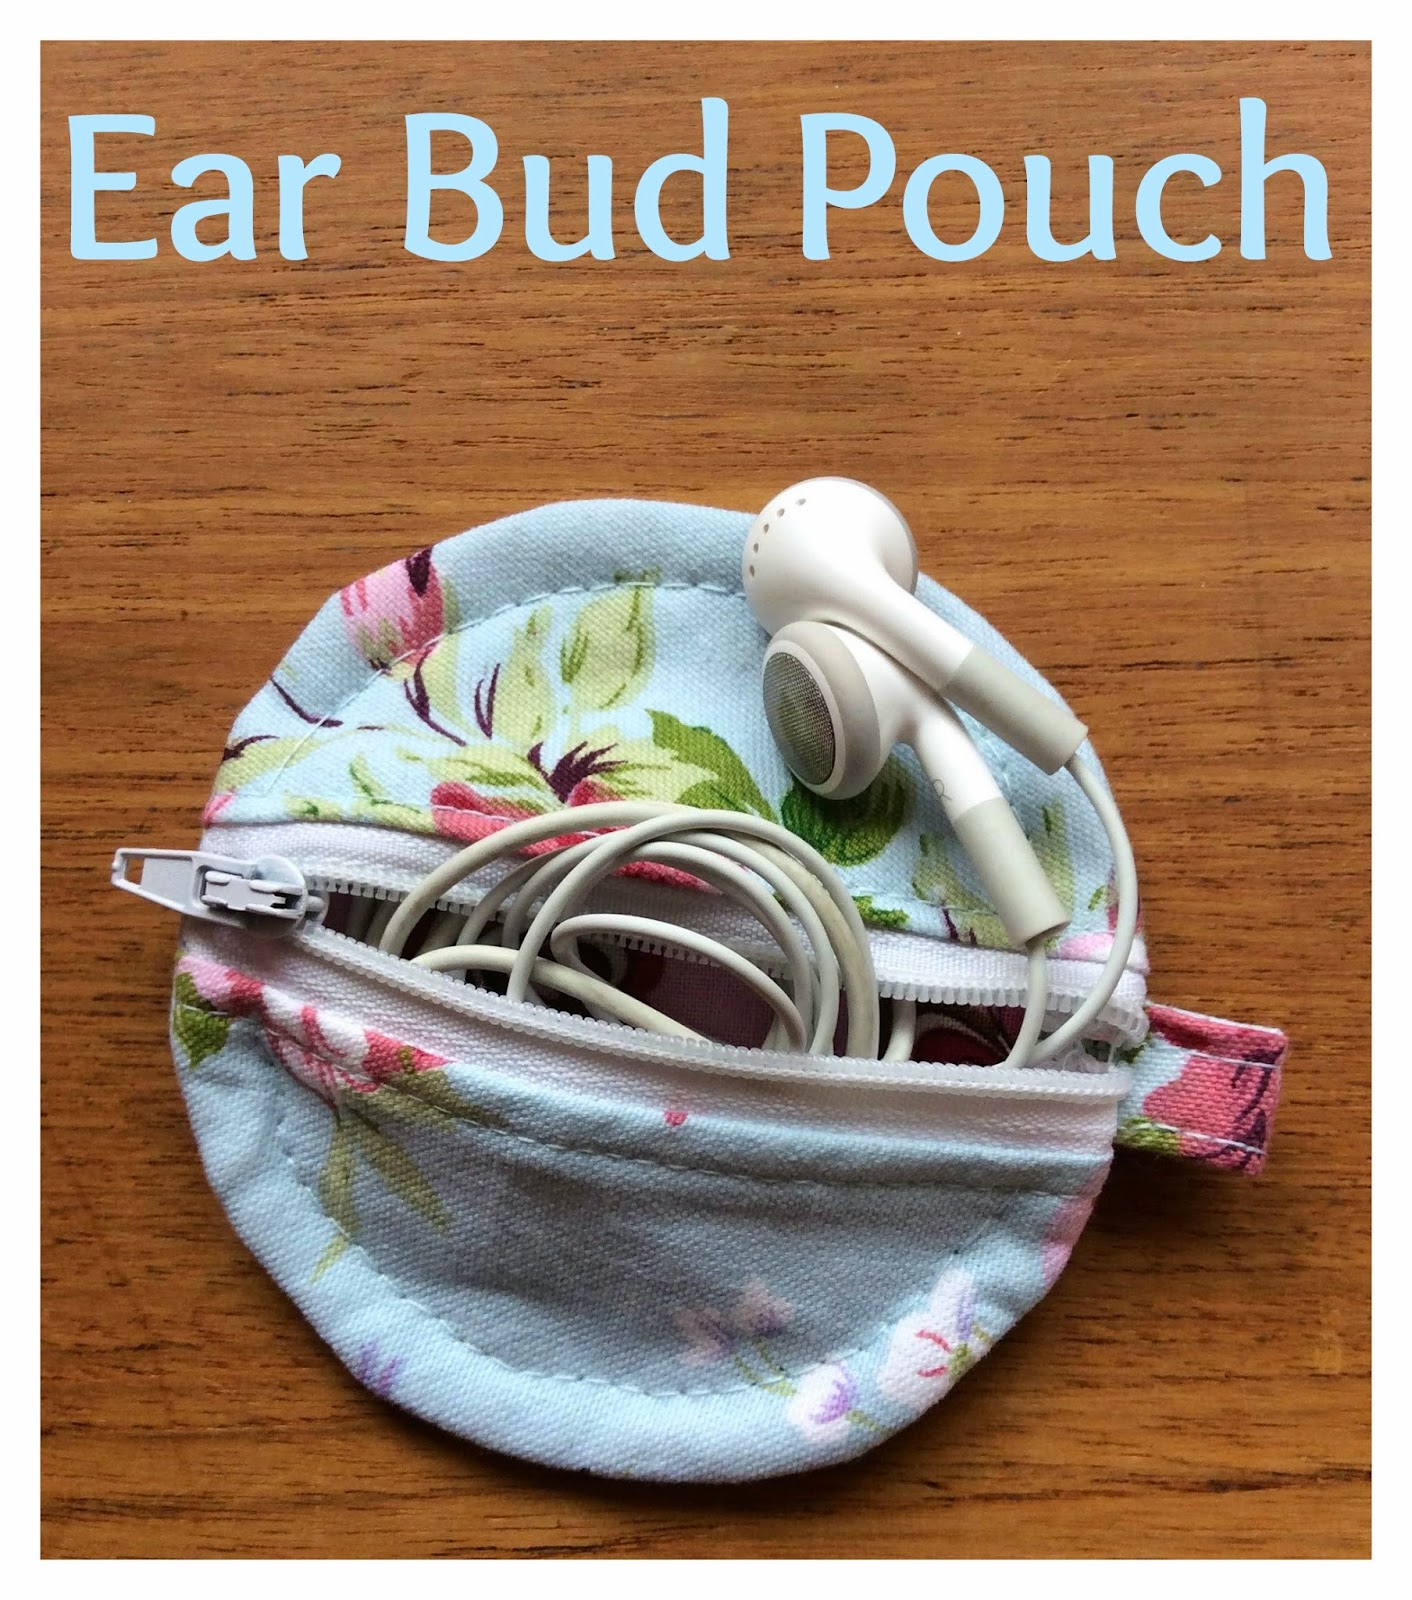 Make your own Ear Bud Pouch